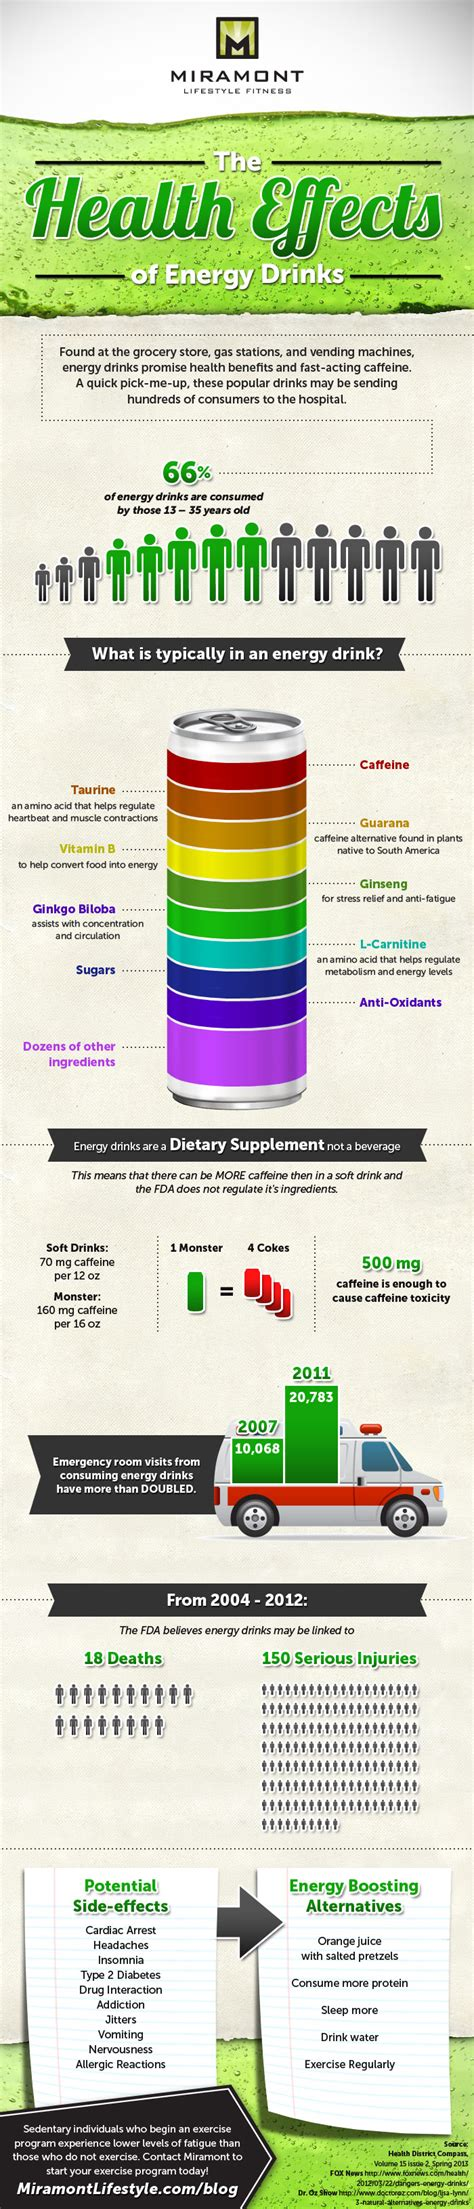 the energy drink side effects side effects of energy drinks infographic